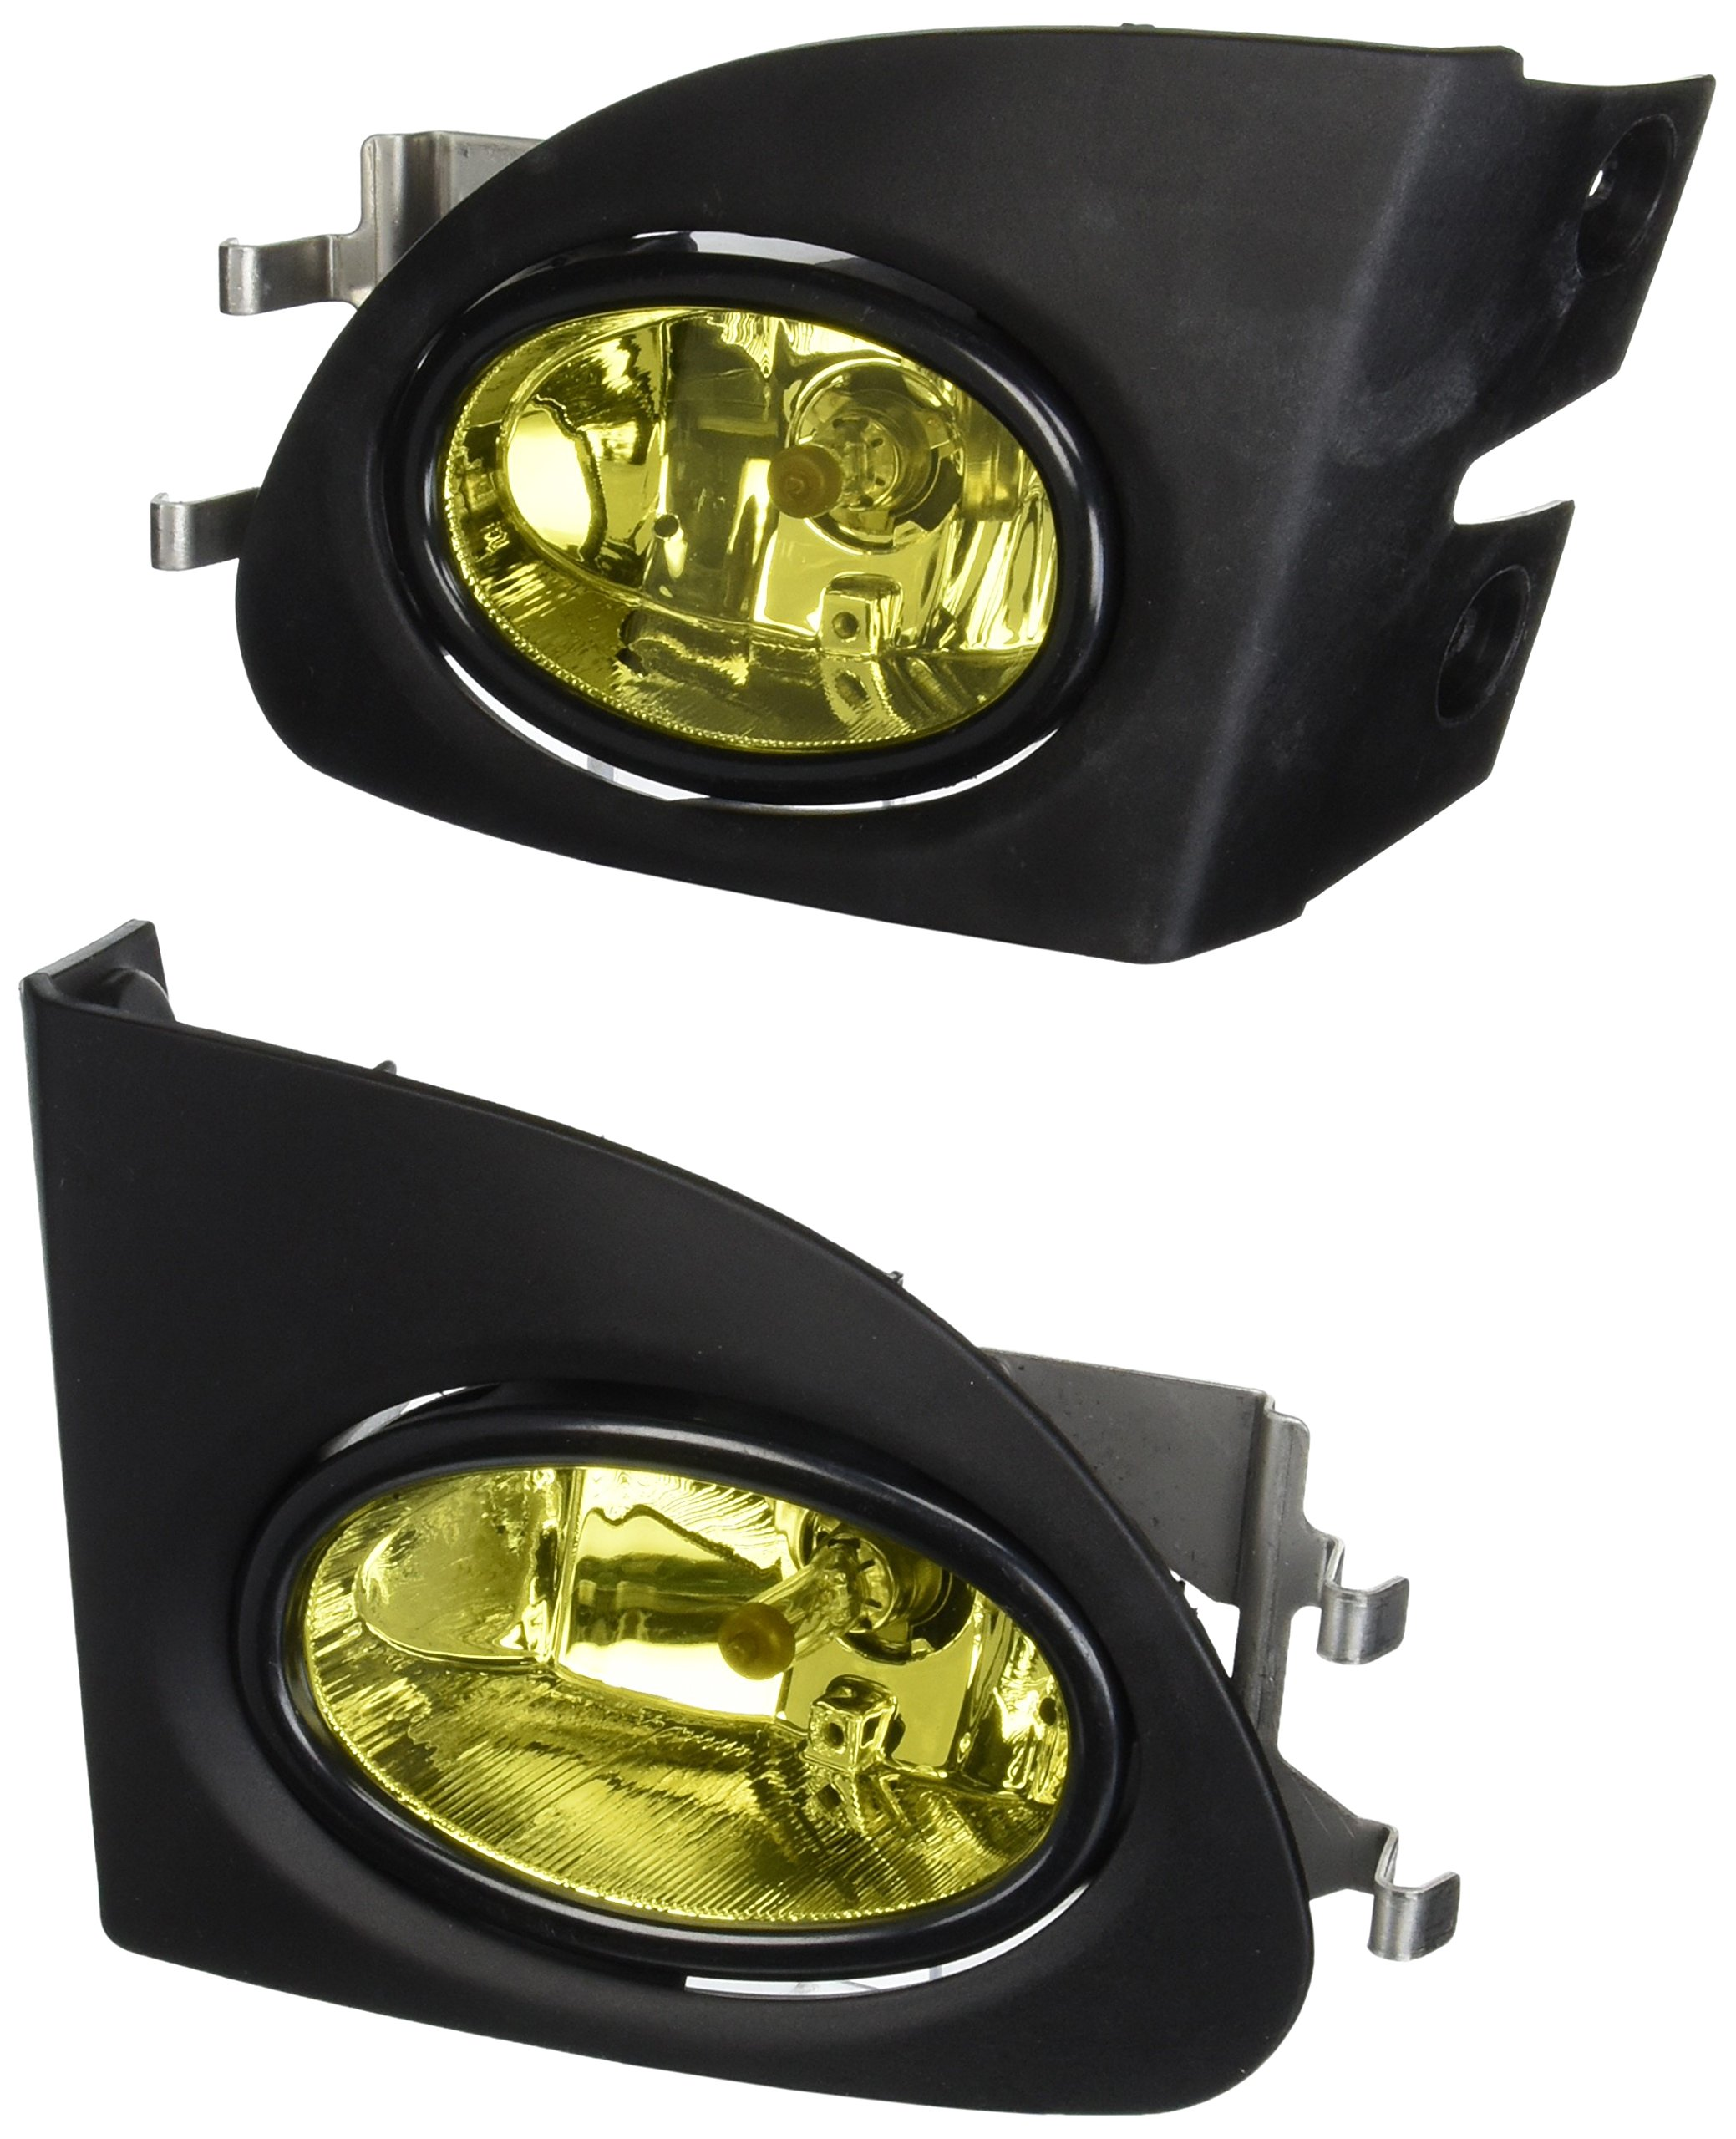 Amazon.com: Spec-D Tuning LF-CV023AMOEM-DL For Honda Civic Si Hatchback EP3  Yellow Bumper Diving Fog Lights Pair: Automotive